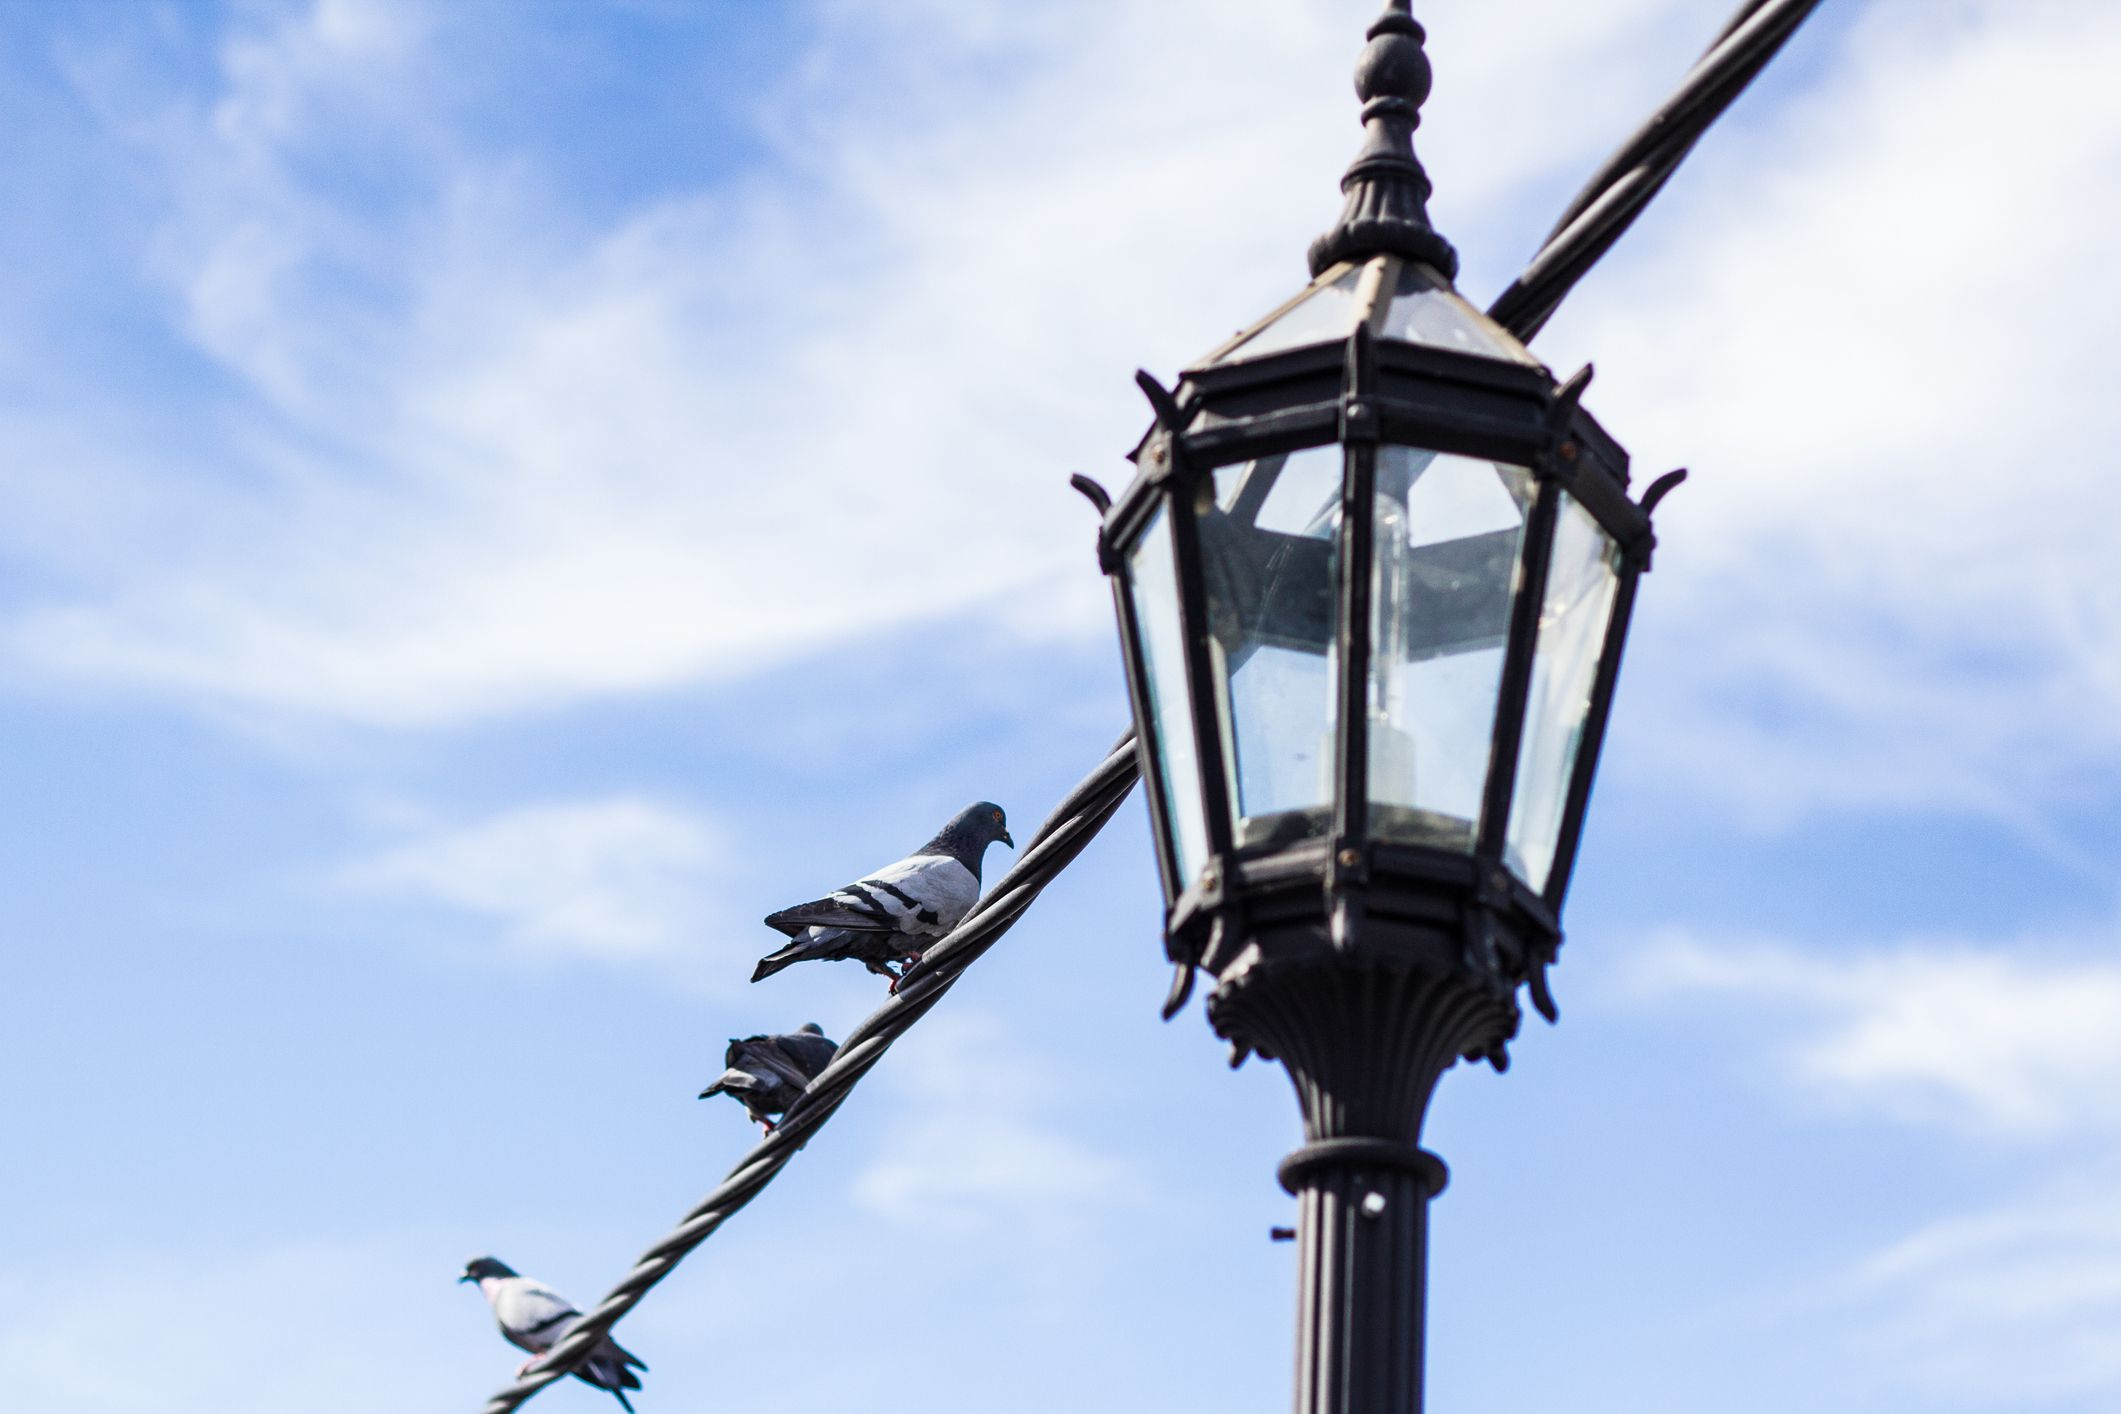 Low Angle View Of Pigeons Perching On Cable By Gaslight Against Sky